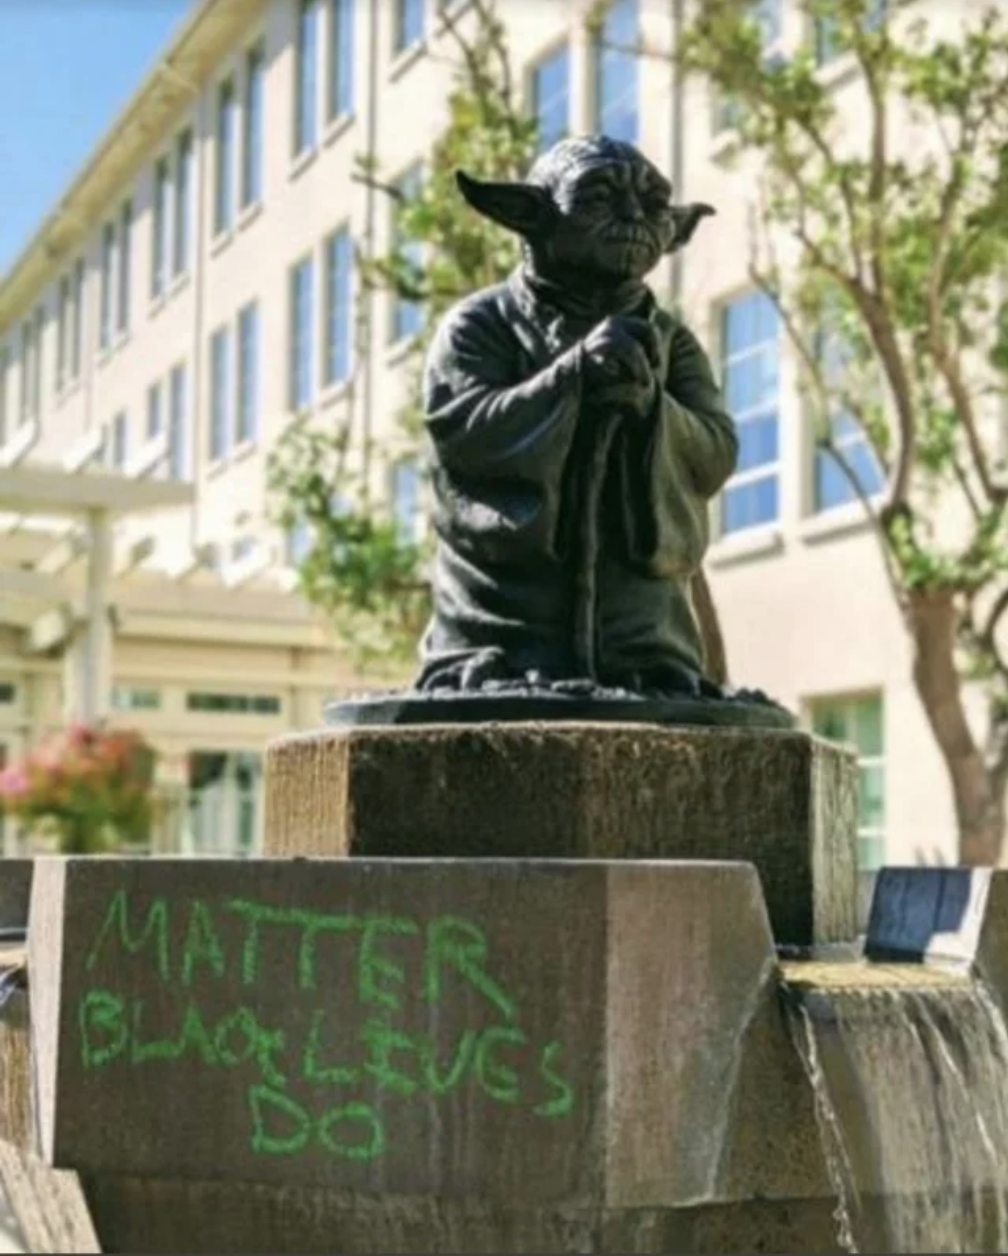 """Matter, black lives do"" has been spray-painted on a statue of yoda"